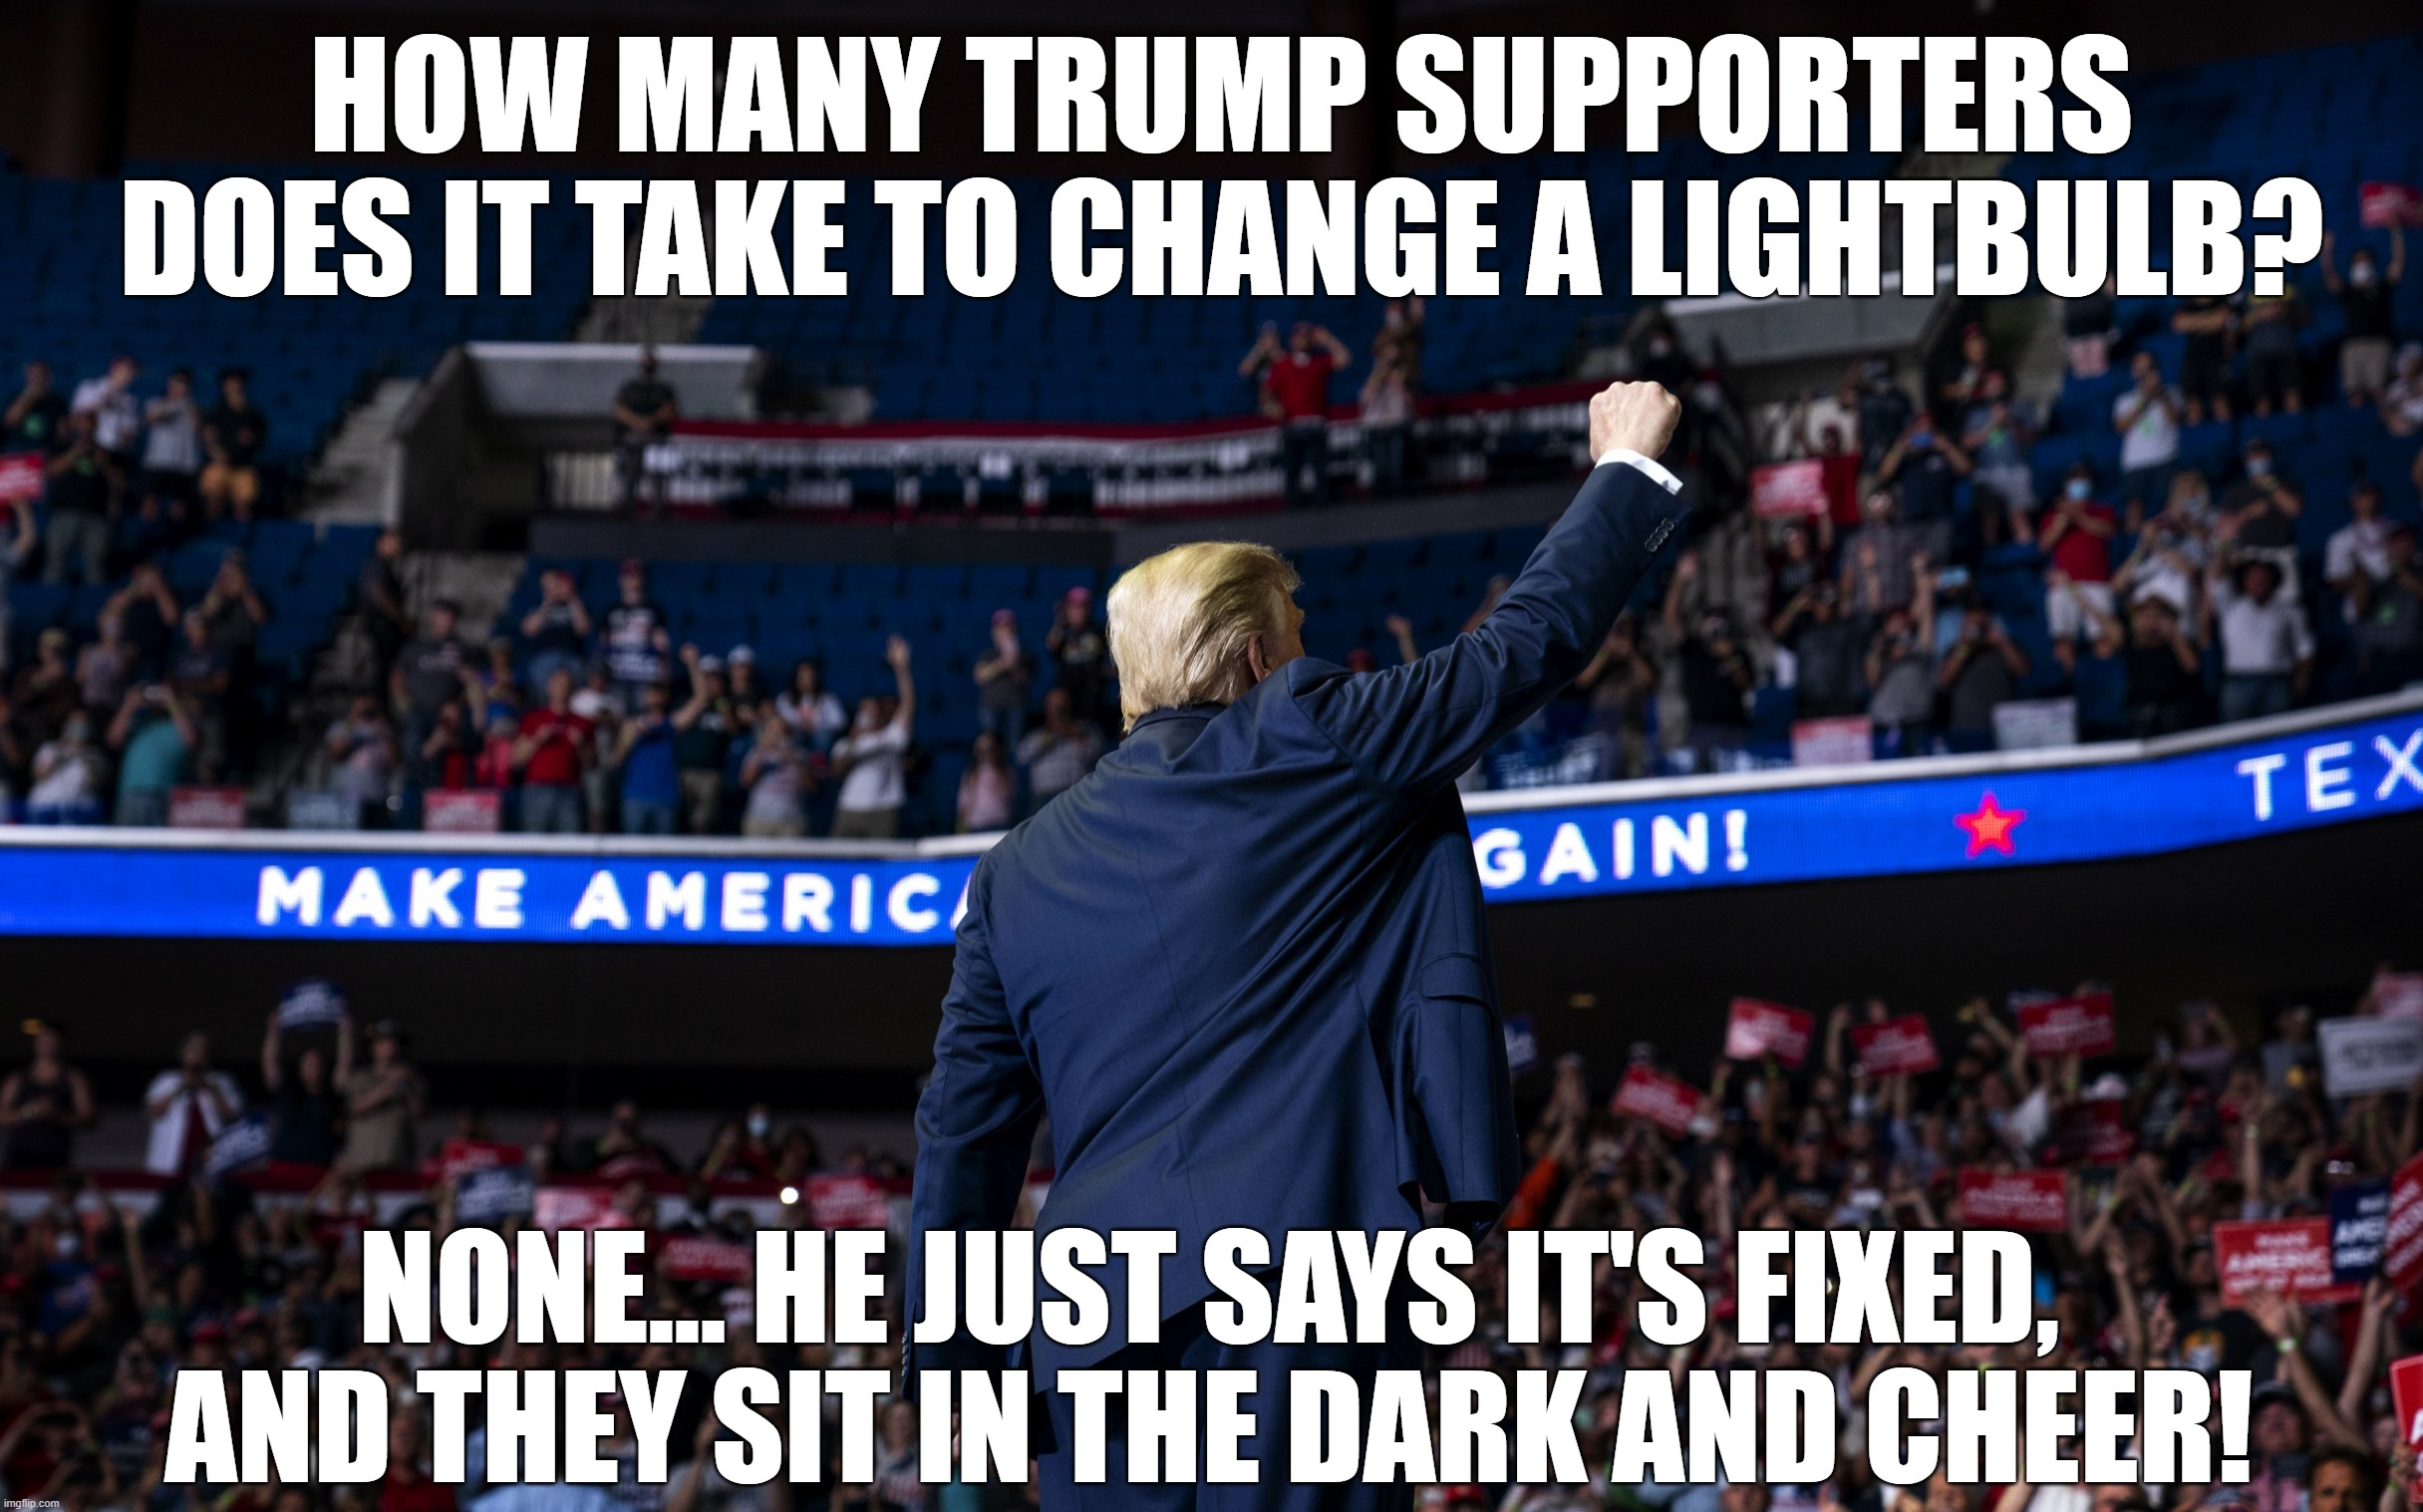 Moronic Trump Supporters |  HOW MANY TRUMP SUPPORTERS DOES IT TAKE TO CHANGE A LIGHTBULB? NONE... HE JUST SAYS IT'S FIXED, AND THEY SIT IN THE DARK AND CHEER! | image tagged in trump,sheeple,sheep,crowd,idiots,supporters | made w/ Imgflip meme maker